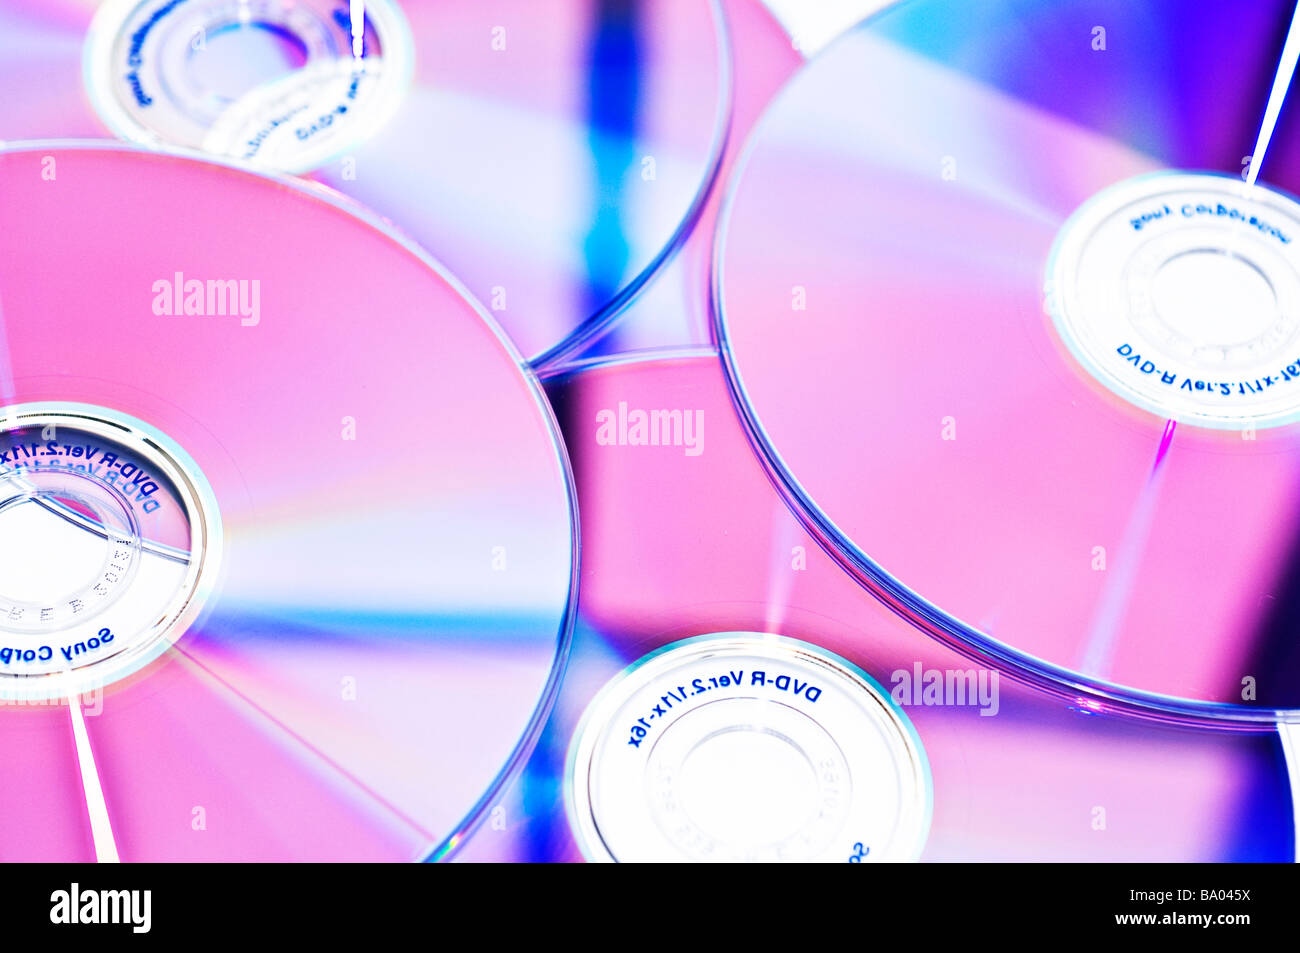 CD and DVD discs - Stock Image